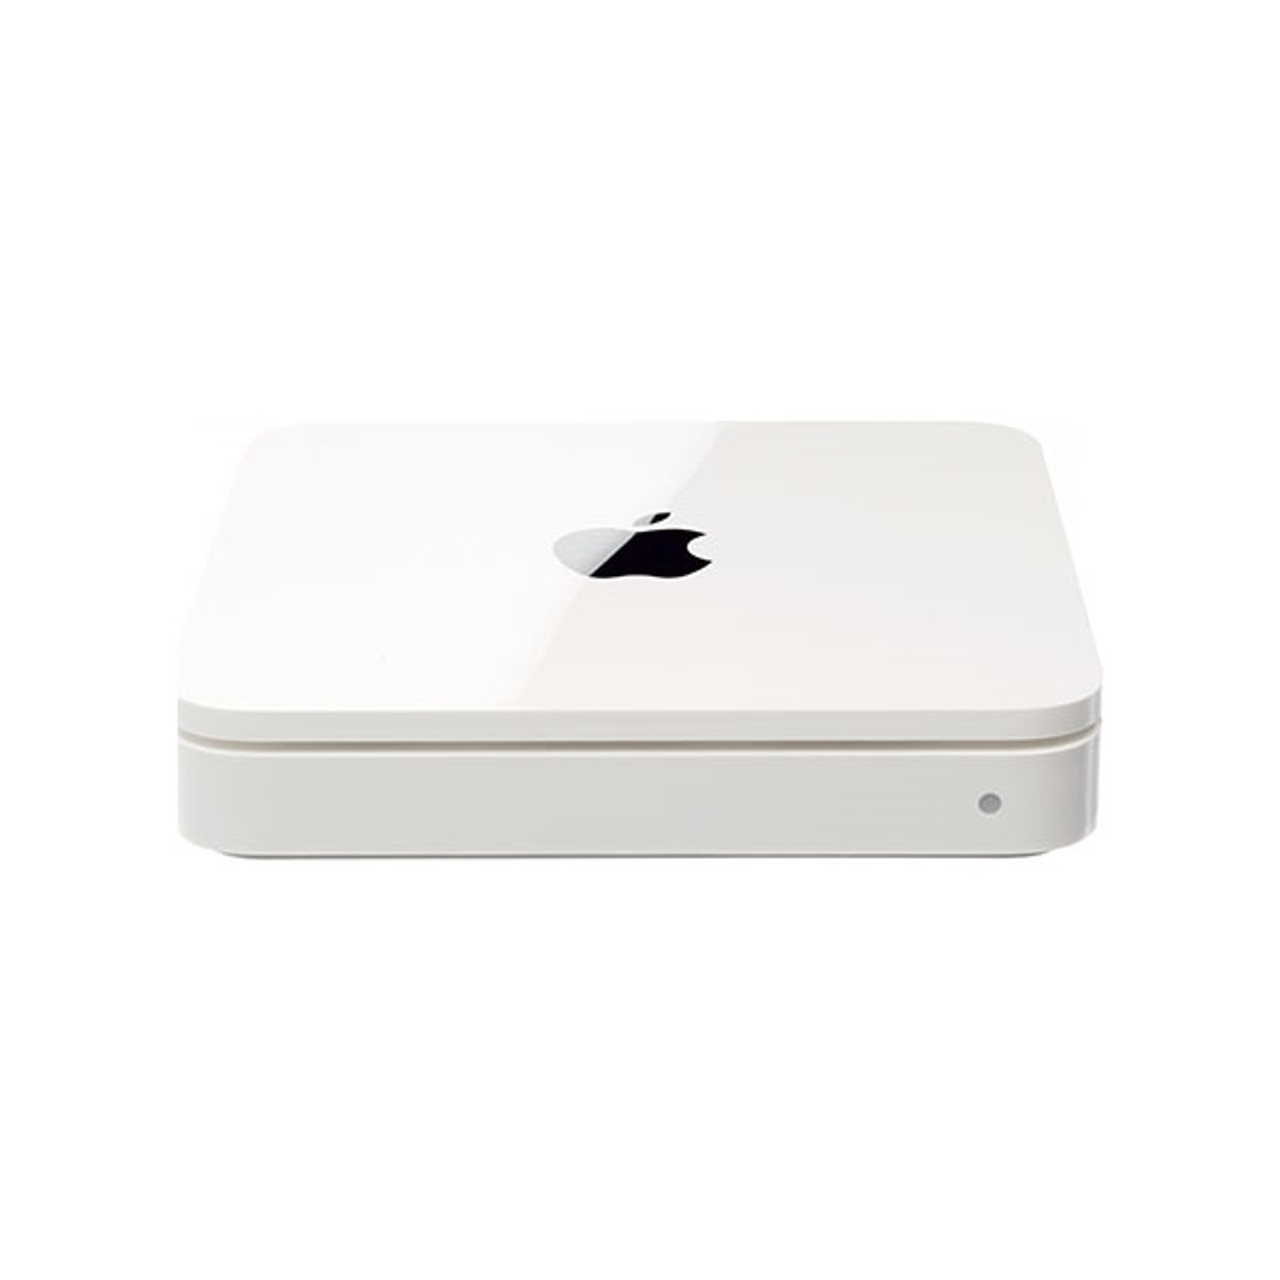 Apple Time Capsule (1st Generation) 1TB MB277LL/A